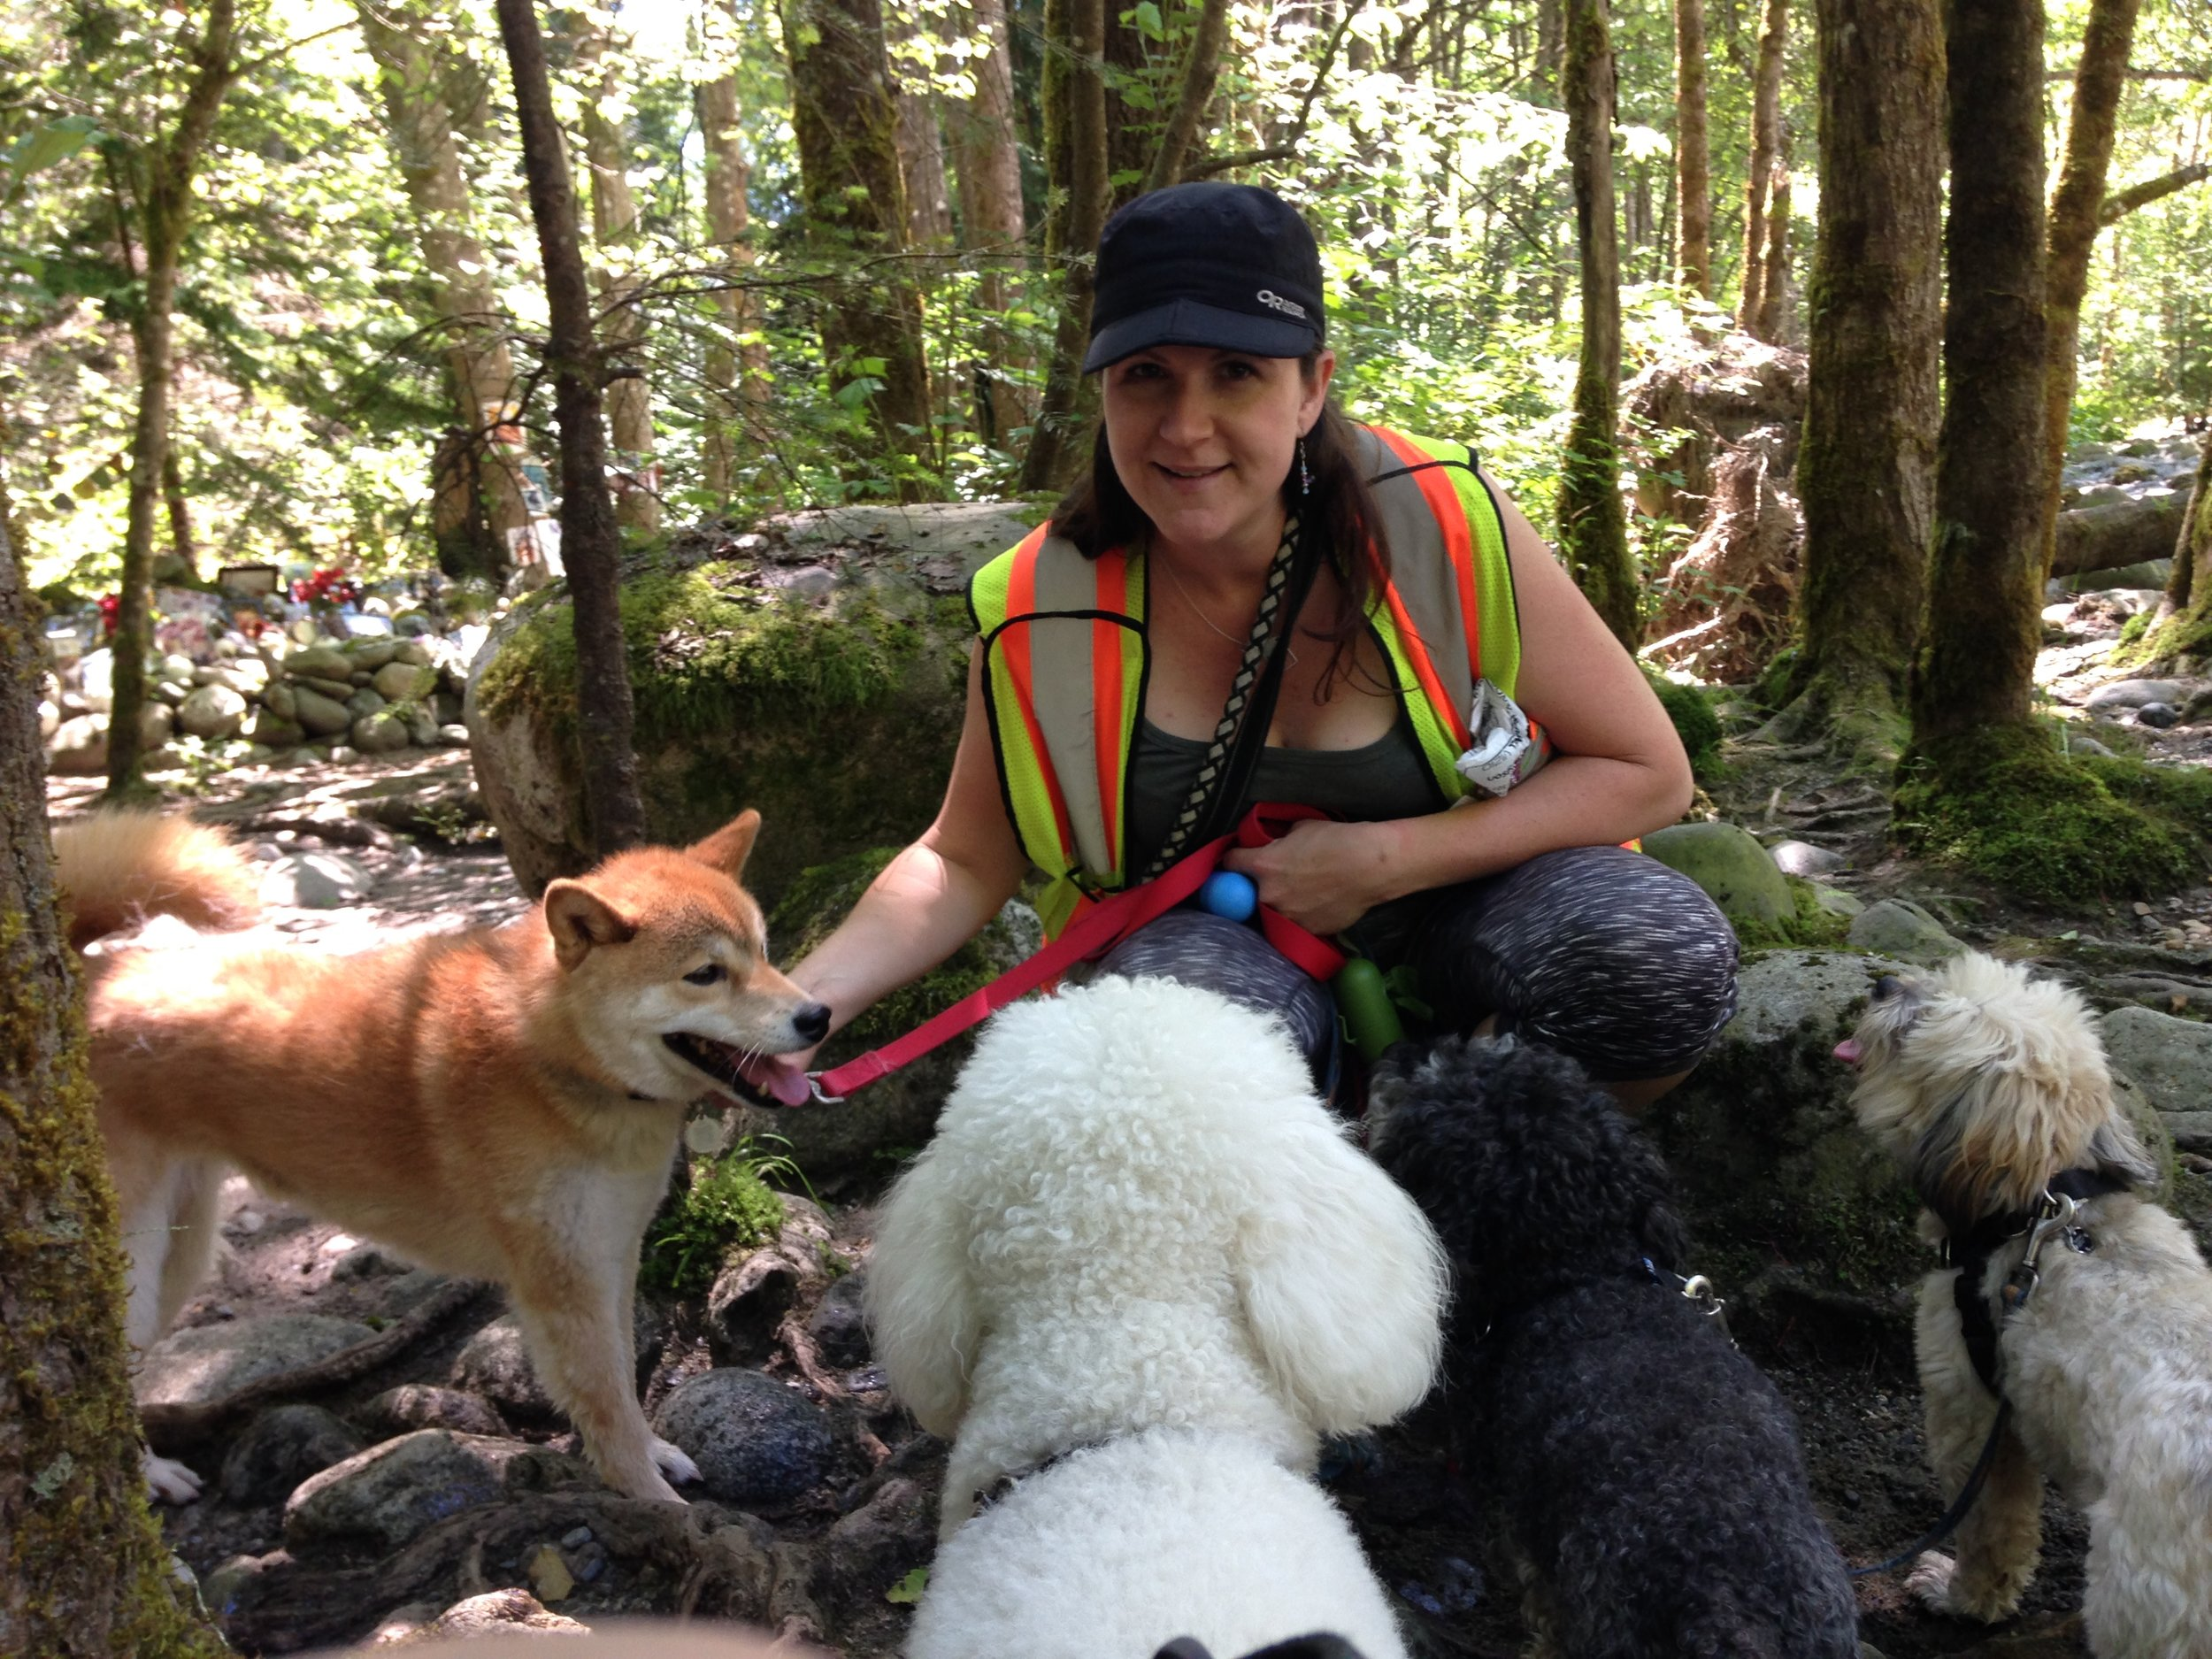 Hello, my name is Alisha Gooch.    I am an assistant in the classes and look forward to working with all the dogs and their people.    I was lucky to grow up in Central British Columbia as well as Bowen Island and more recently the North Shore. From my younger years to now I have always had a dog at my side to go on daily adventures or just to sit and cuddle. I have also had cats and a variety of other critters throughout my life. (sheep, chickens, bunnies, and birds just name a few)    My career with animals and their people has been varied over the years. I have worked in Pet retail stores, Pet groomer, Pet wholesale (making gourmet pet treats and prepared food) and finally as a dog walker. I currently work as a commercial dog walker for a North Shore based company as well as working for a few of my own clients.    I love being with the dogs!! Taking them on daily adventures and applying my training to their daily routine. My dogs love the work and have a look of pride when showered with praise and rewarded with treats.    I live in North Vancouver with Graham and our two lovely cats. Beans and Polar.    I have my Early Child Care certificate (Capilano University) and worked for seven years with young children before returning to working with dogs. I love working with children and their dogs. Both require patients, direction, leadership and love.    I look forward to meeting everyone in the classes.